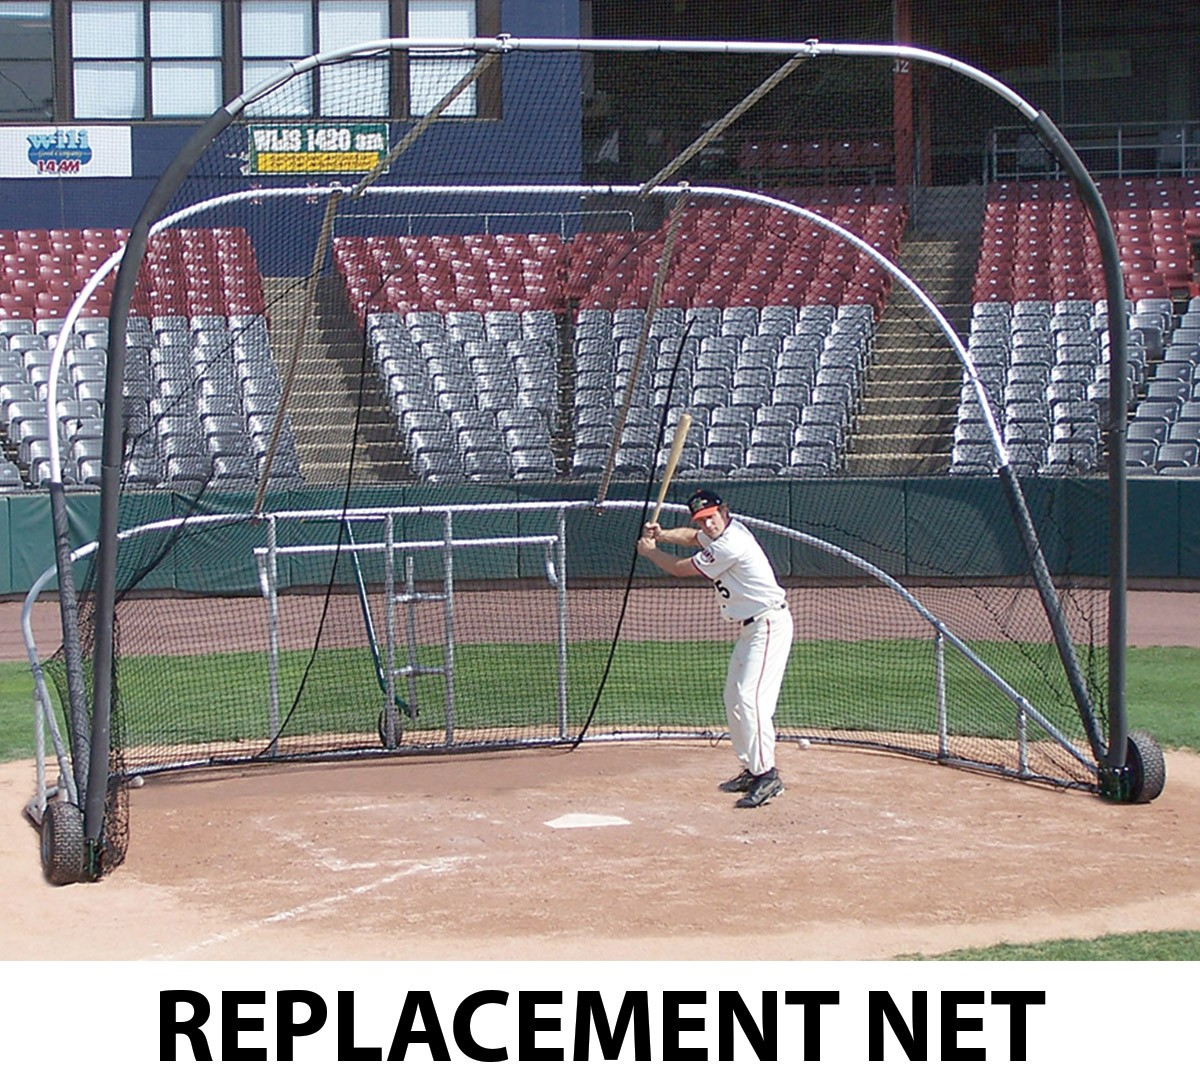 Portable Batting Cages Backyard: Portable Batting Cage REPLACEMENT NET